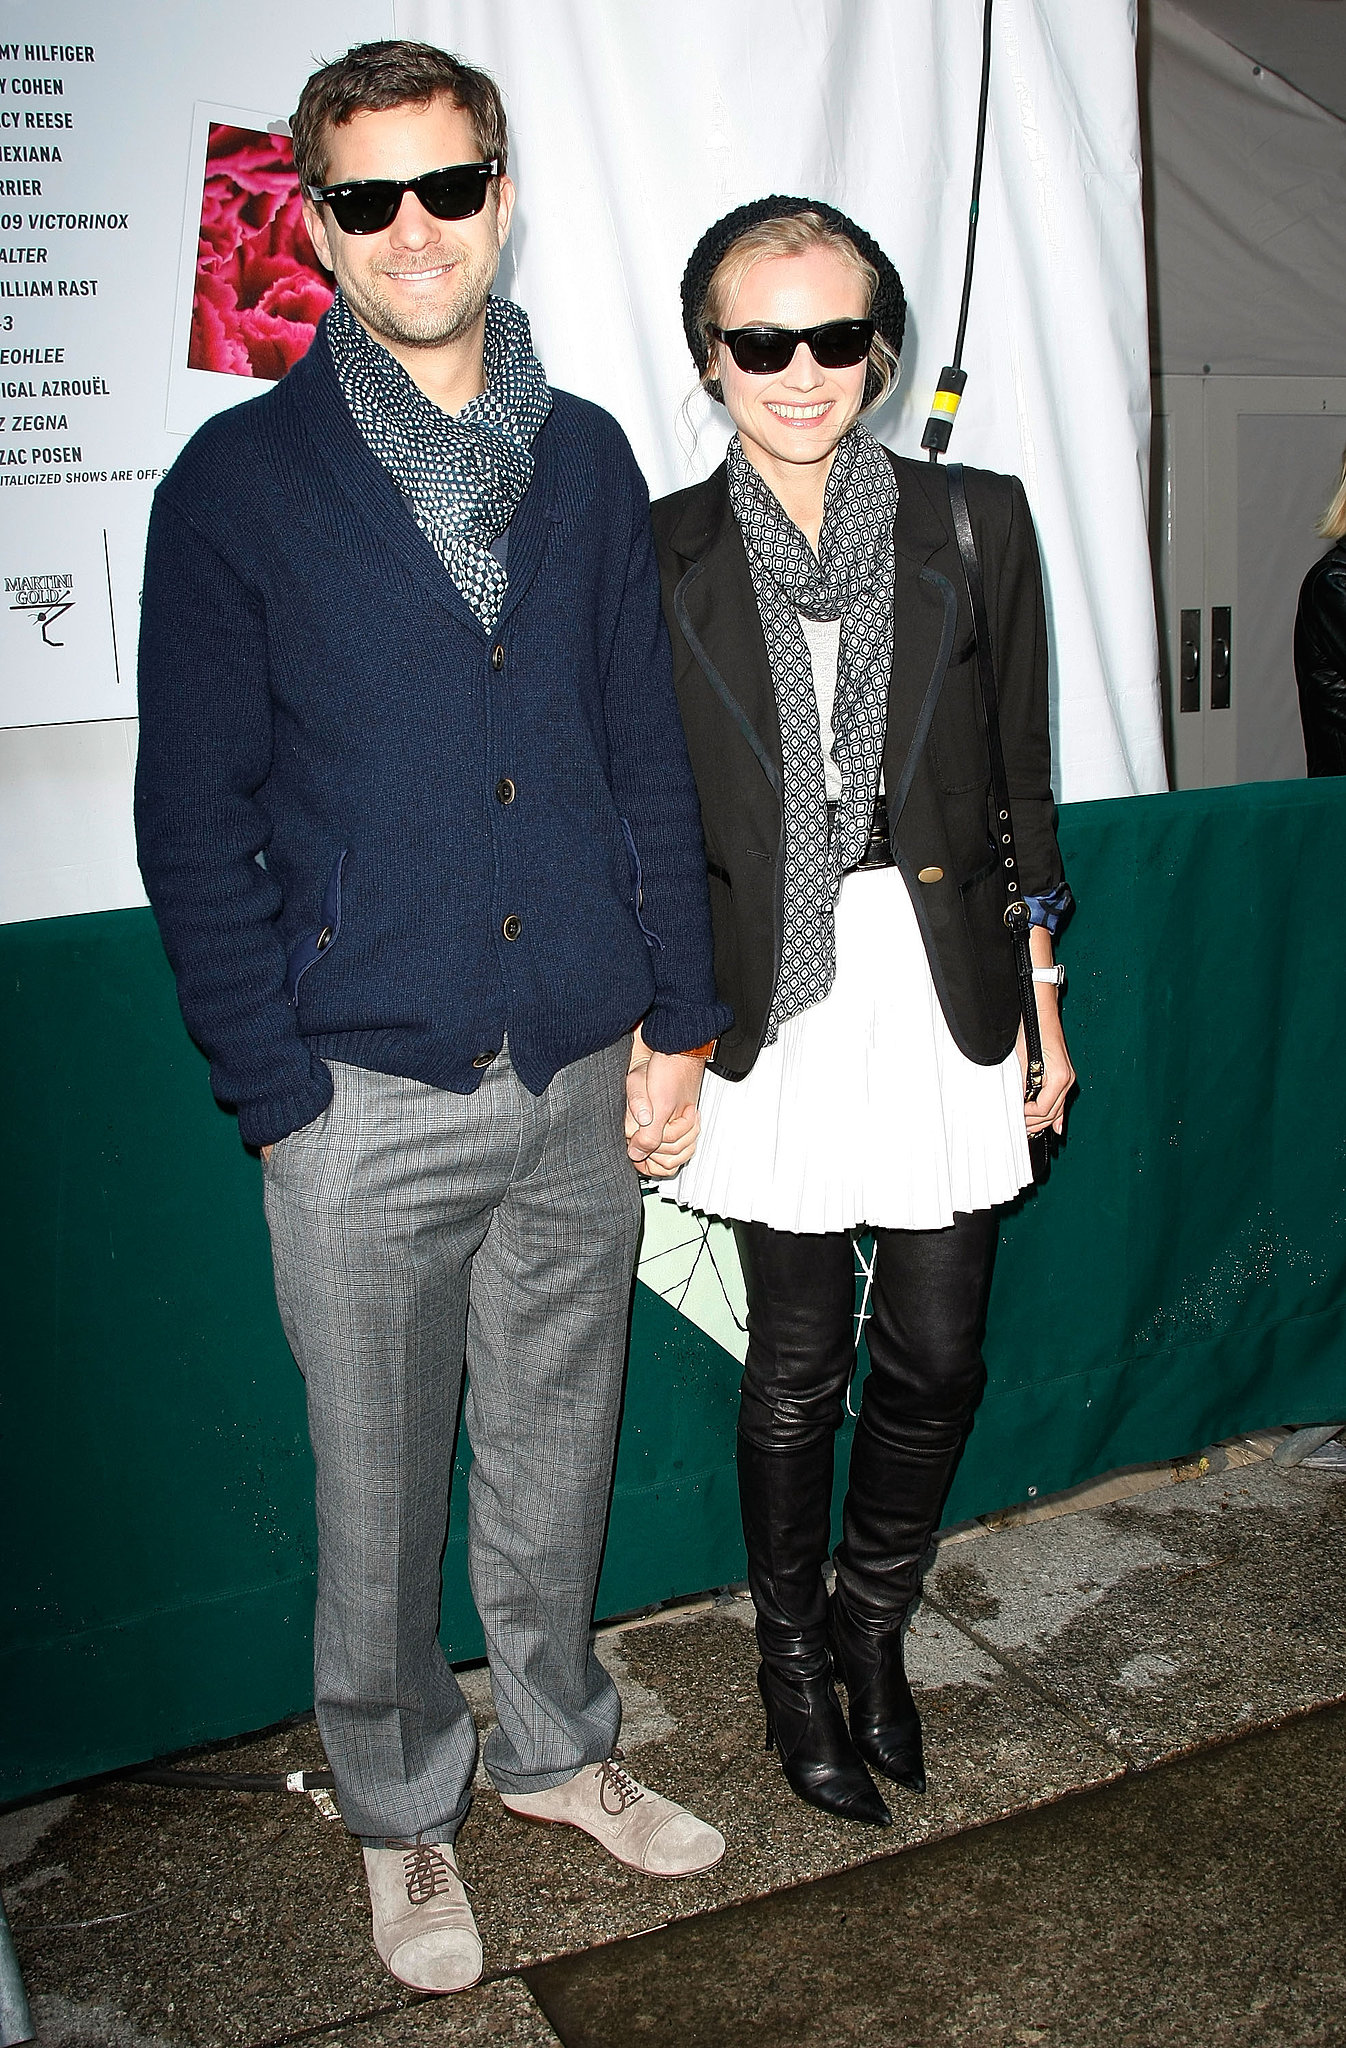 Joshua Jackson and Diane Kruger sported matching sunglasses while walking around Bryant Park in September 2009.